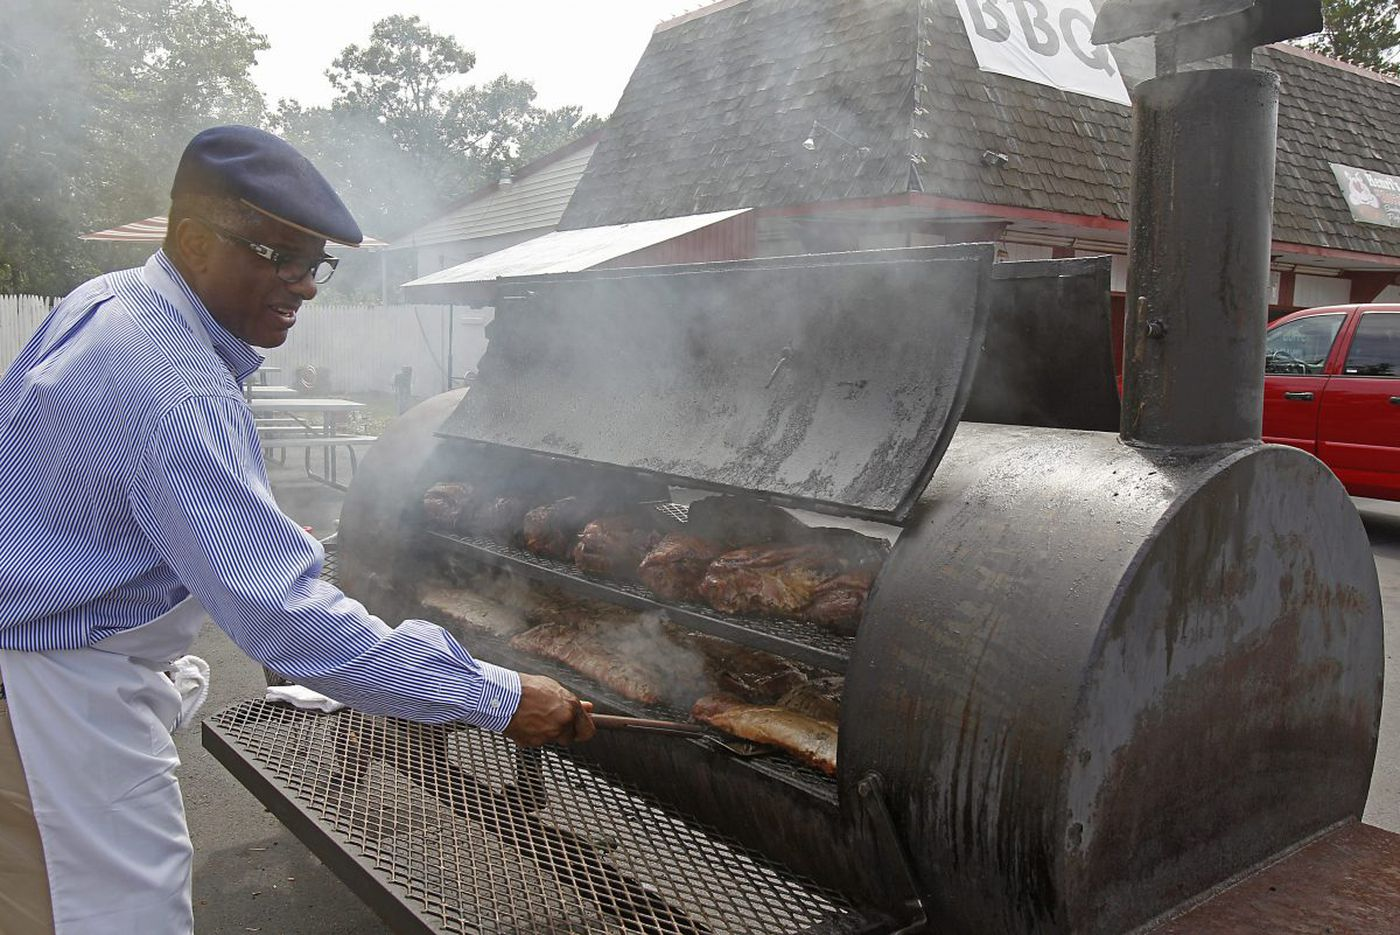 Doug Henri turns out some of the best barbecue in the region at Henri's Hotts Barbecue in Folsom.